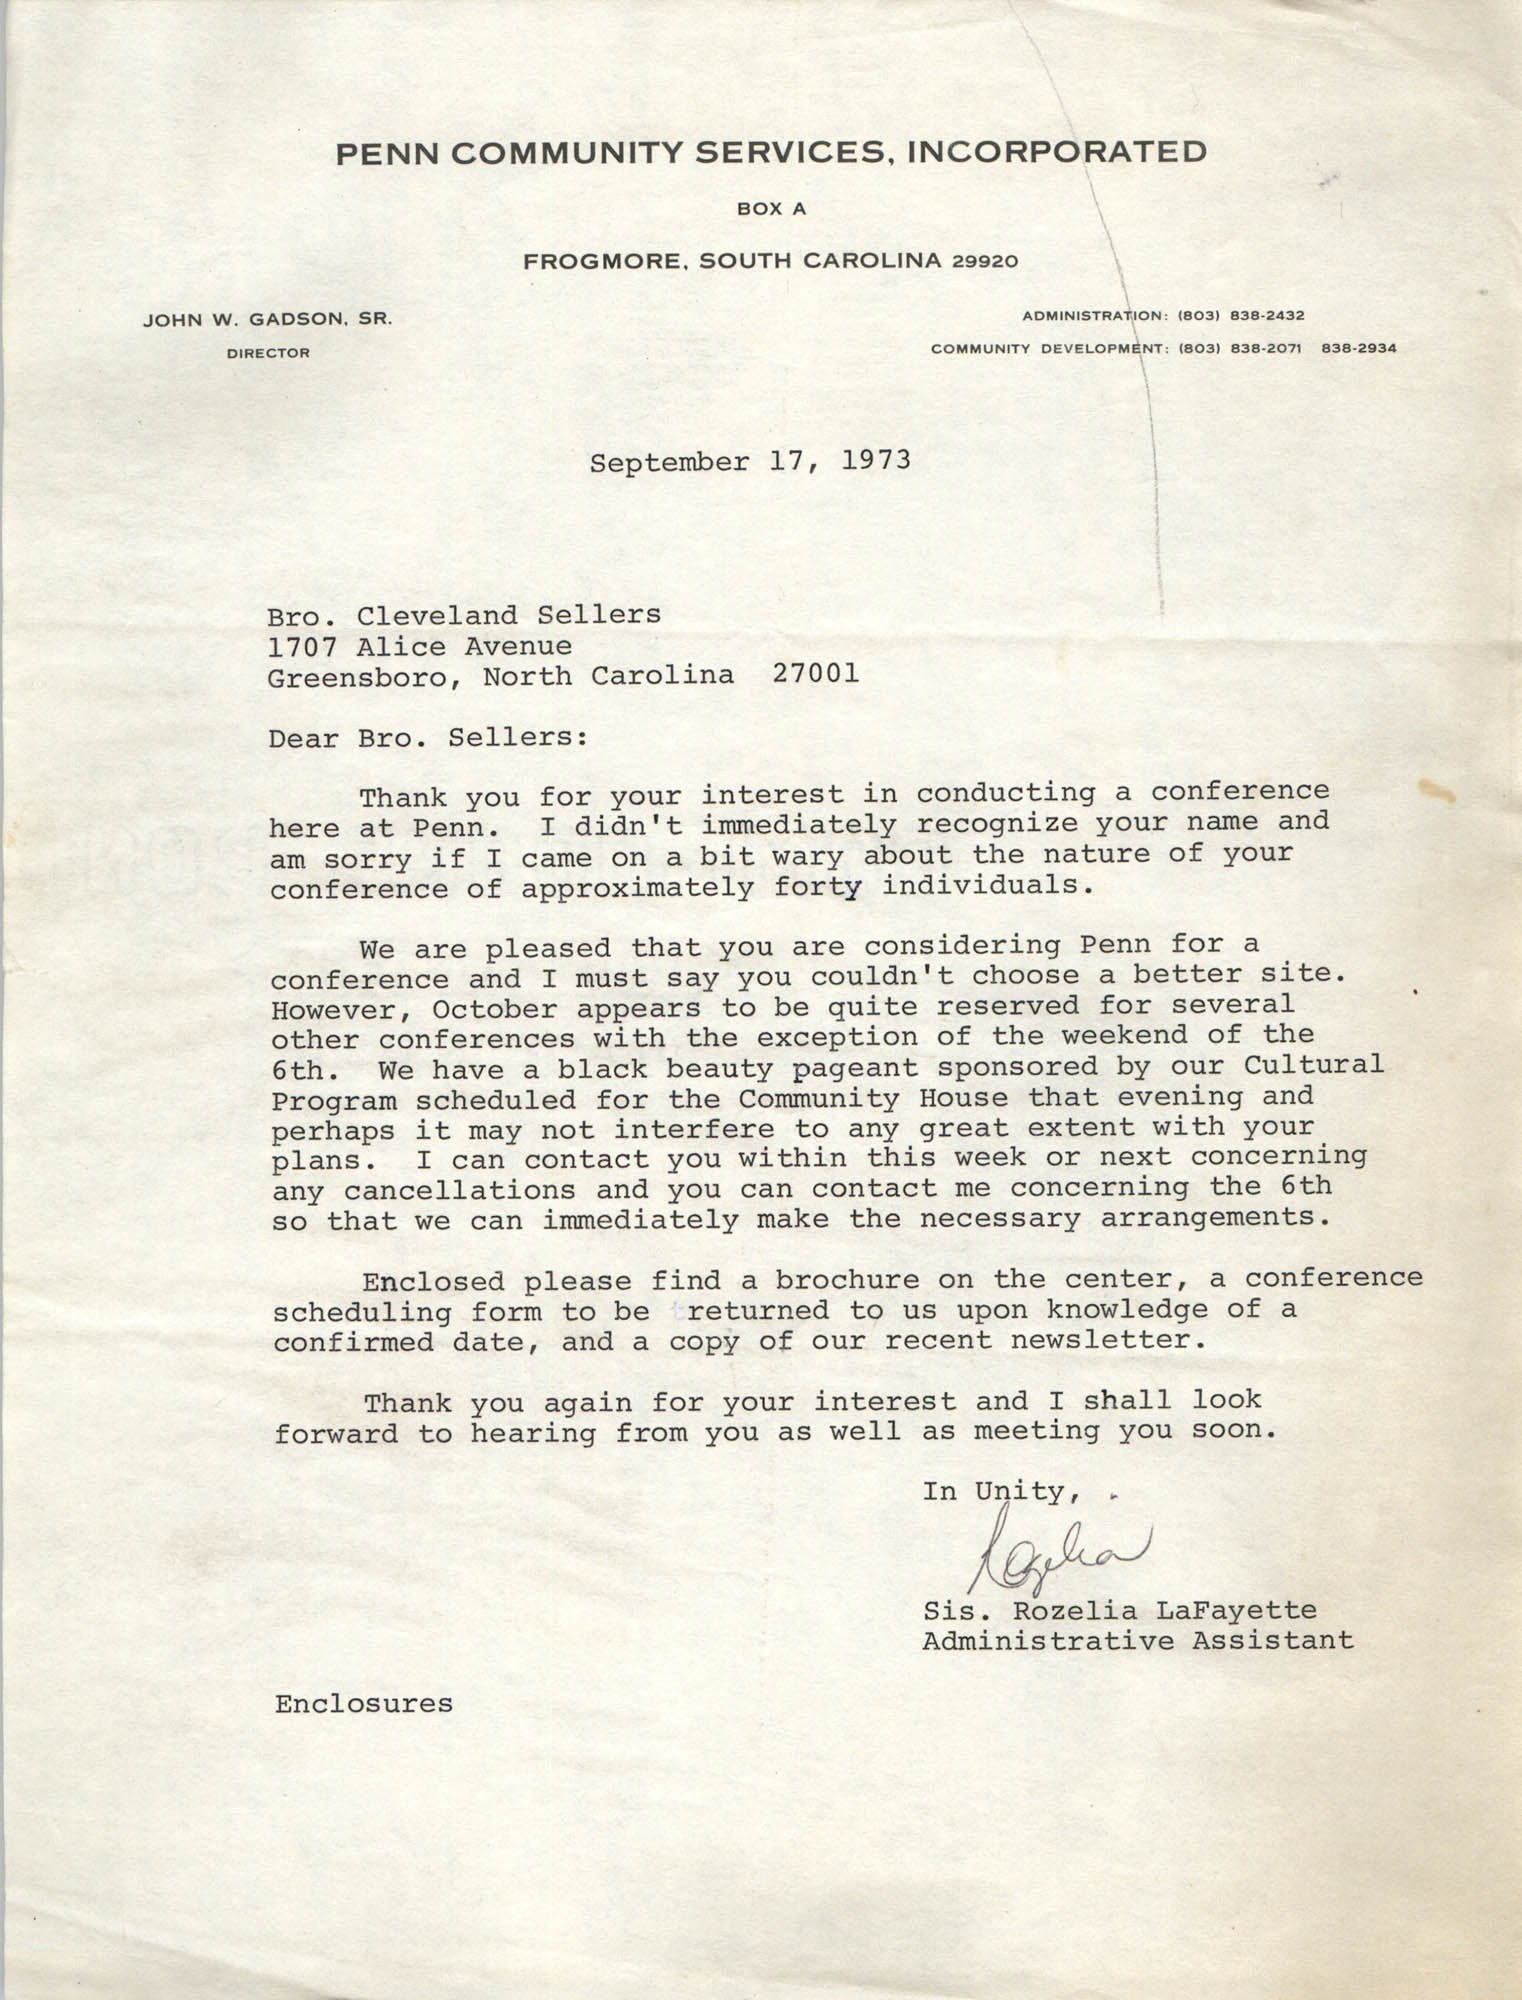 Letter from Rozelia LaFayette to Cleveland Sellers, September 17, 1973